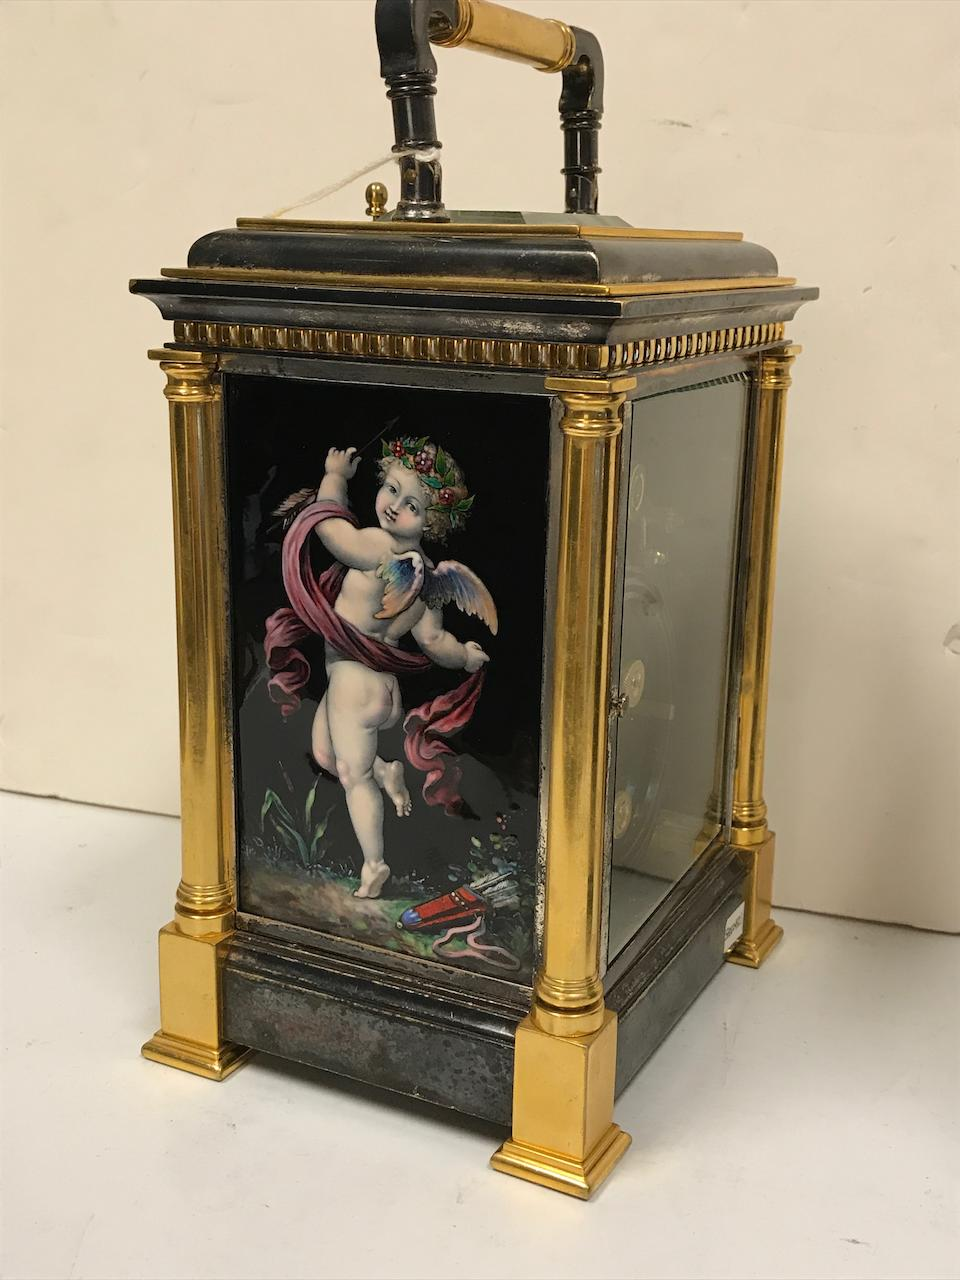 A very fine gilt and silvered grande sonnerie striking and quarter repeating Limoges enamel paneled giant carriage clock with alarmLast quarter 19th century